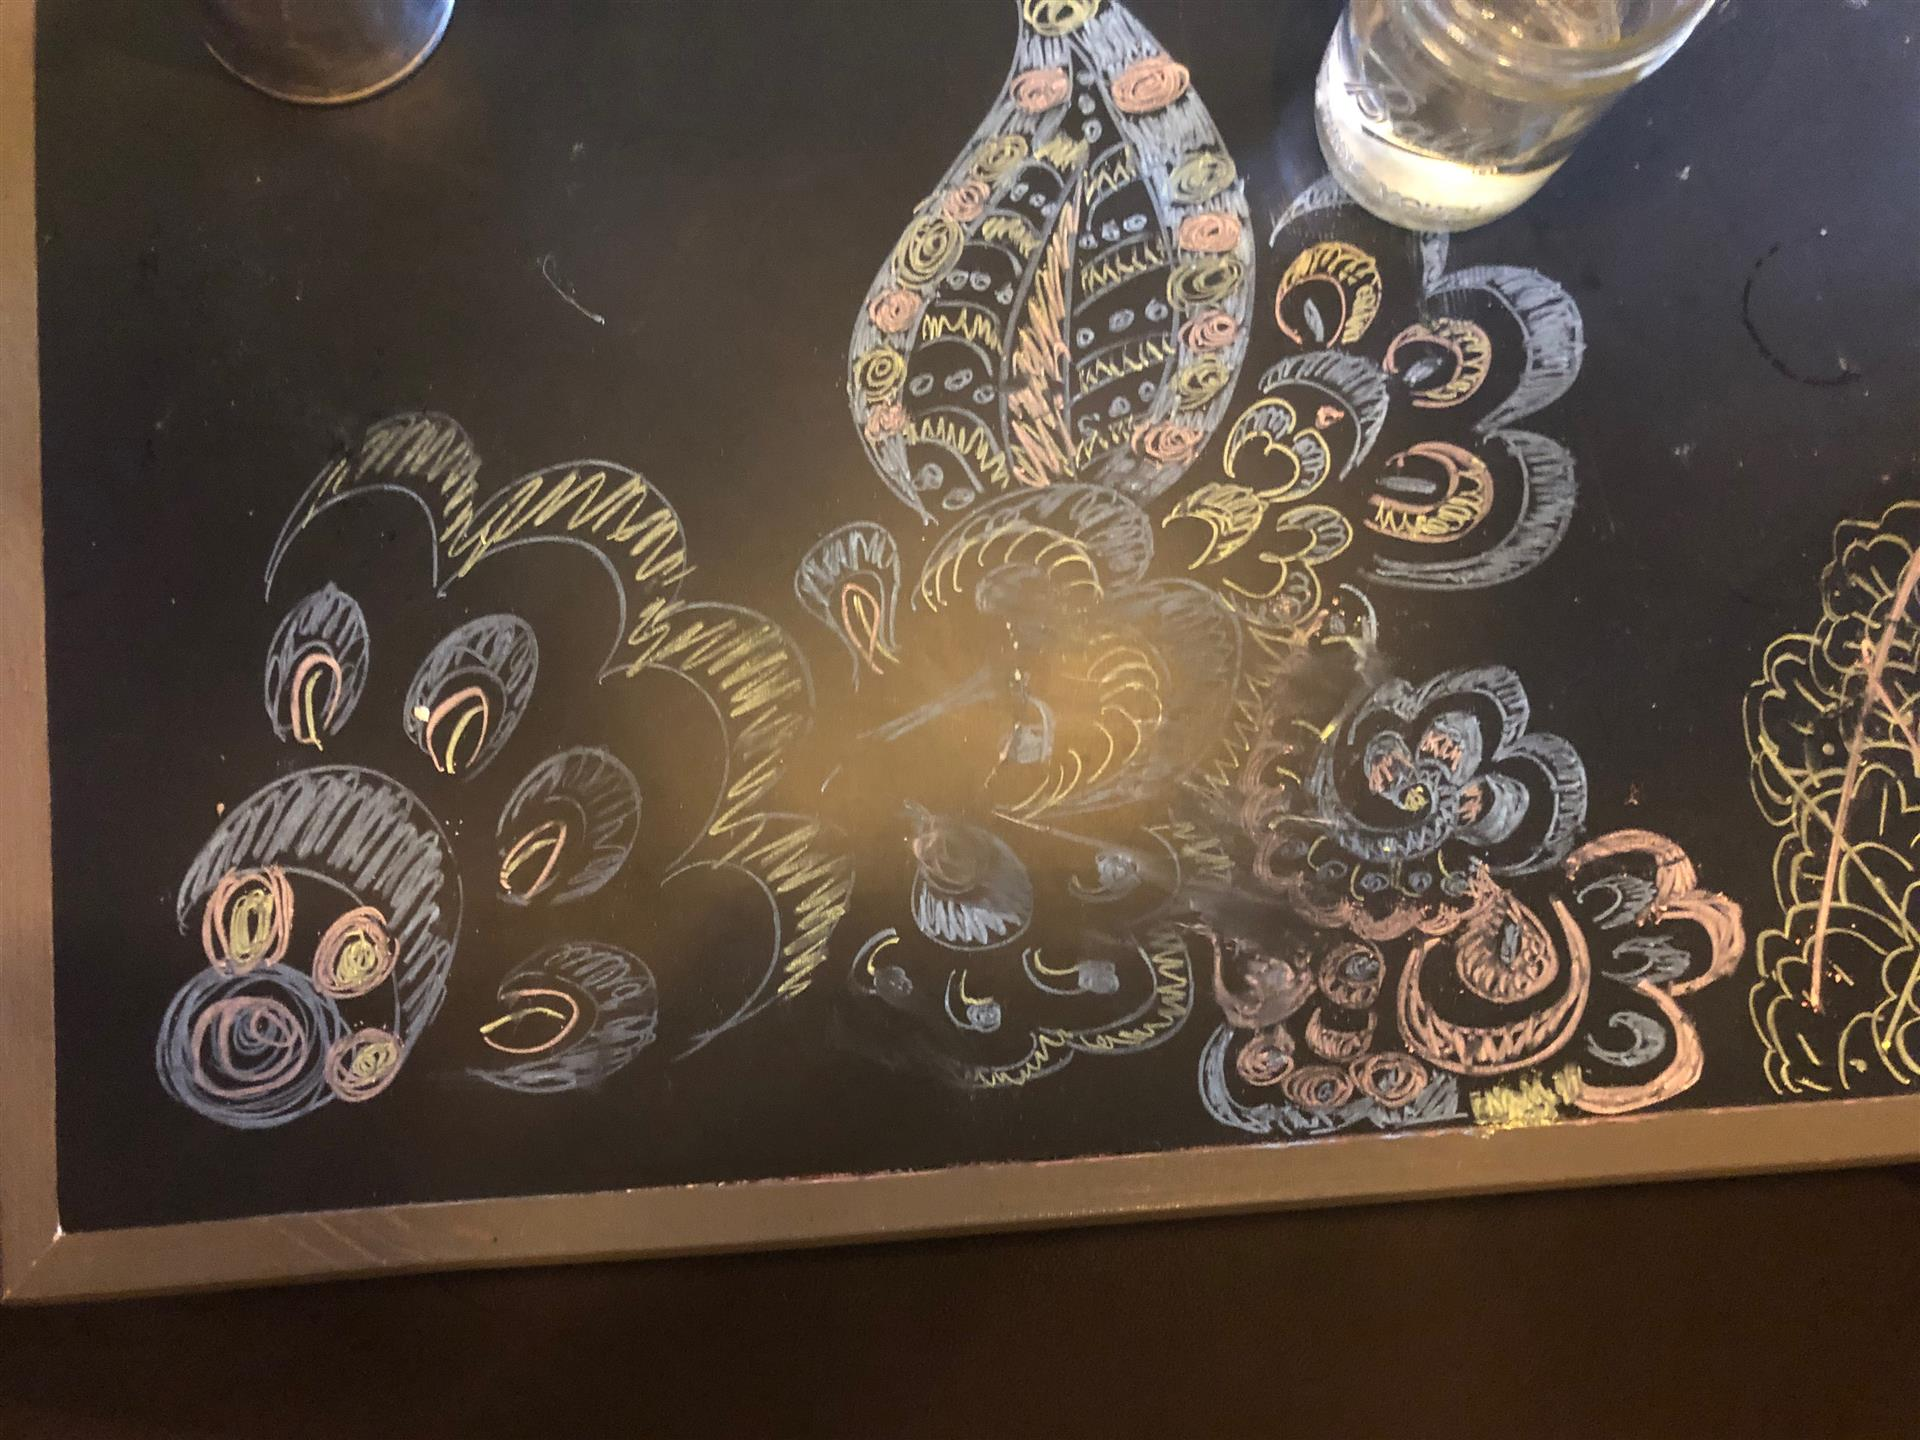 chalk art drawing on a table